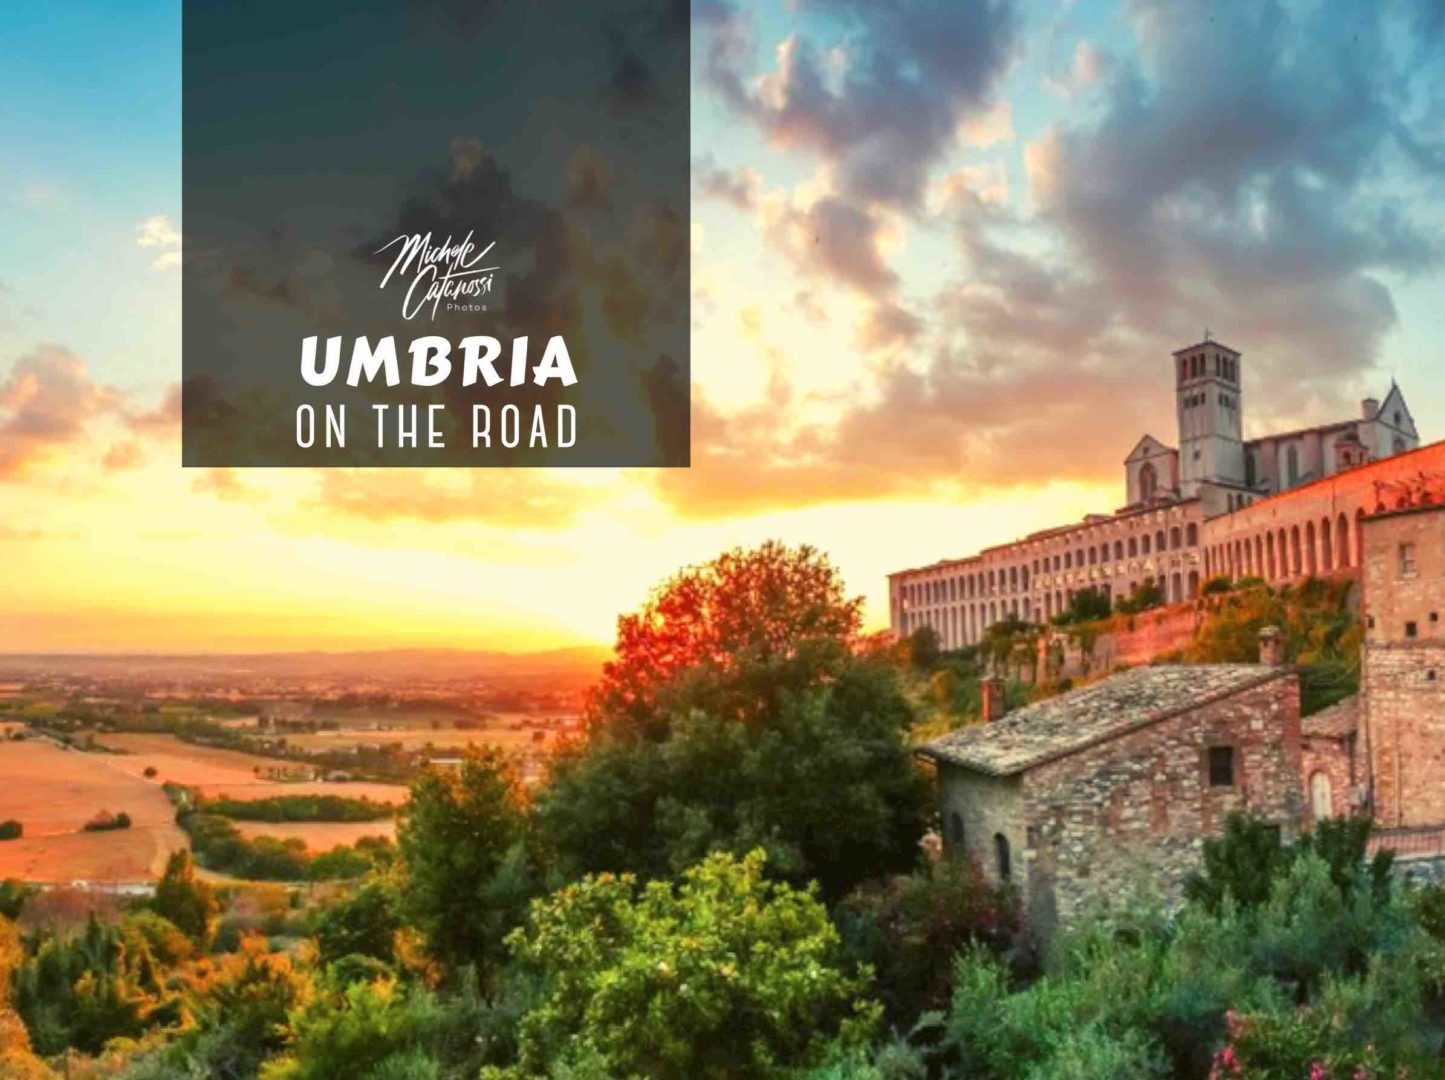 Viaggio in Umbria on the road: itinerario e consigli!